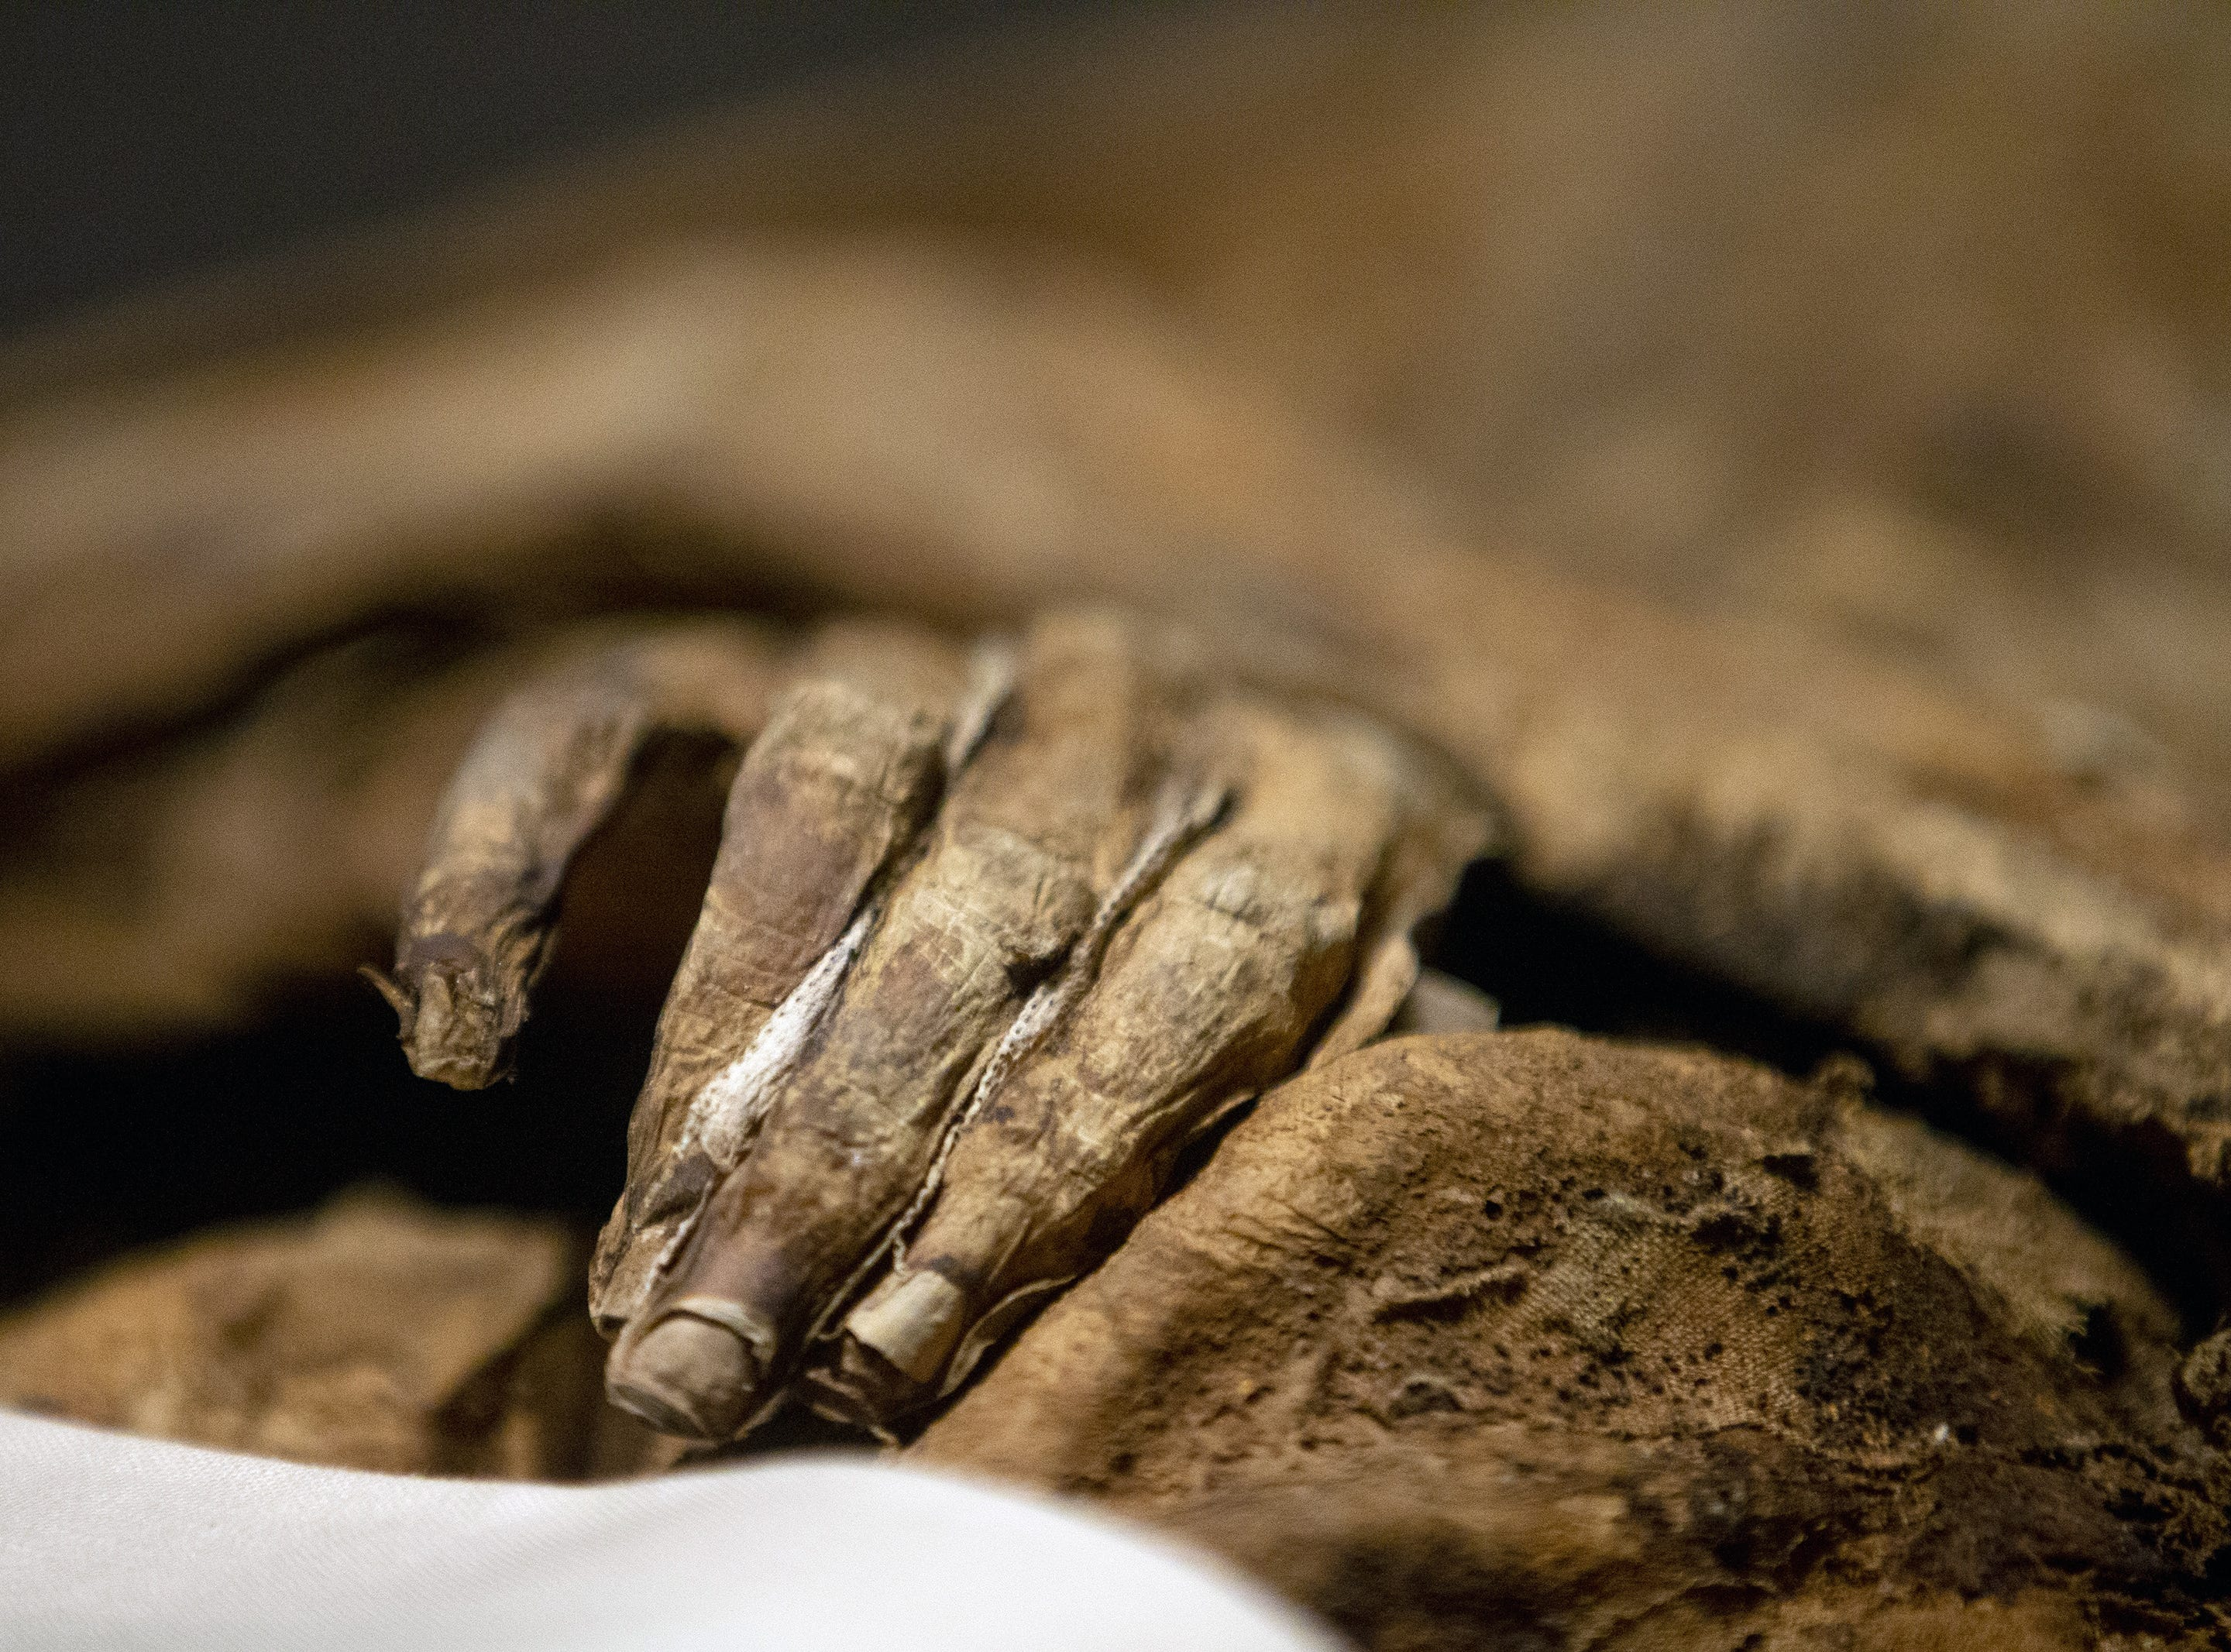 Mummies of the World: The Exhibition displays Baroness Schenck vo Geiern at the Arizona Science Center. She is a naturally preserved mummy found at Sommersdorf Castle. The exhibit includes mummies from Egypt, Europe and the U.S. and is open to the public from Feb. 10 through Sept. 2, 2019.